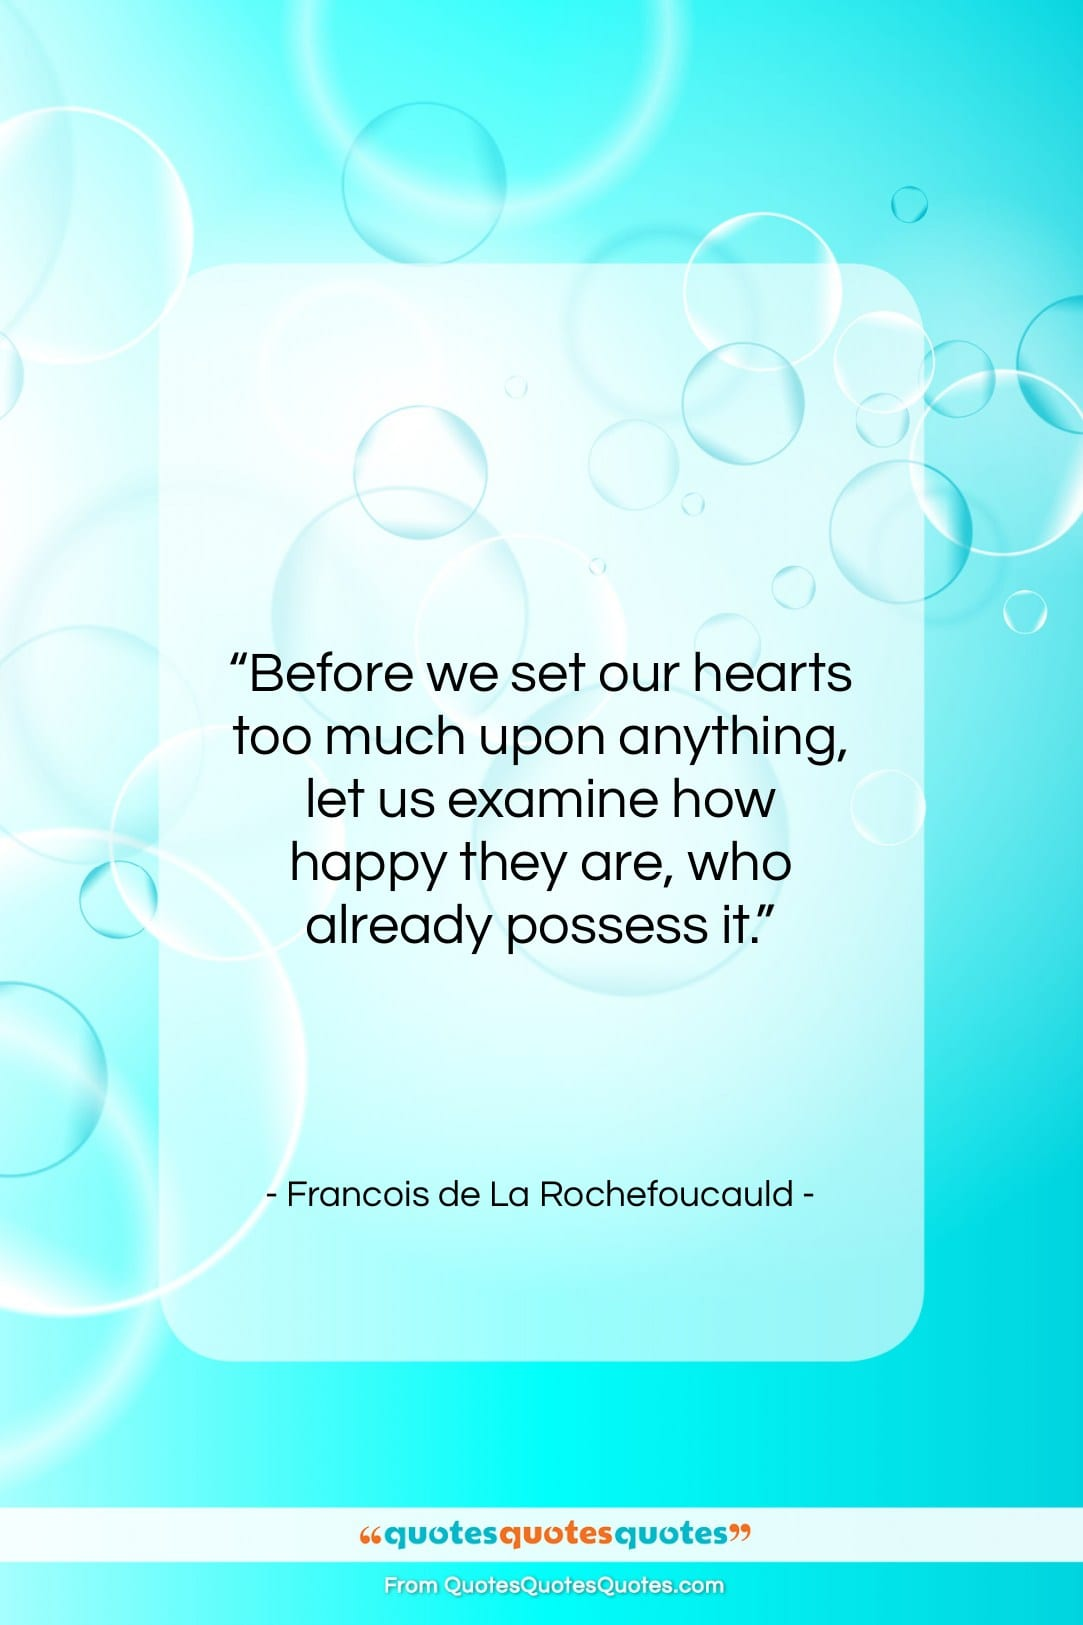 """Francois de La Rochefoucauld quote: """"Before we set our hearts too much…""""- at QuotesQuotesQuotes.com"""